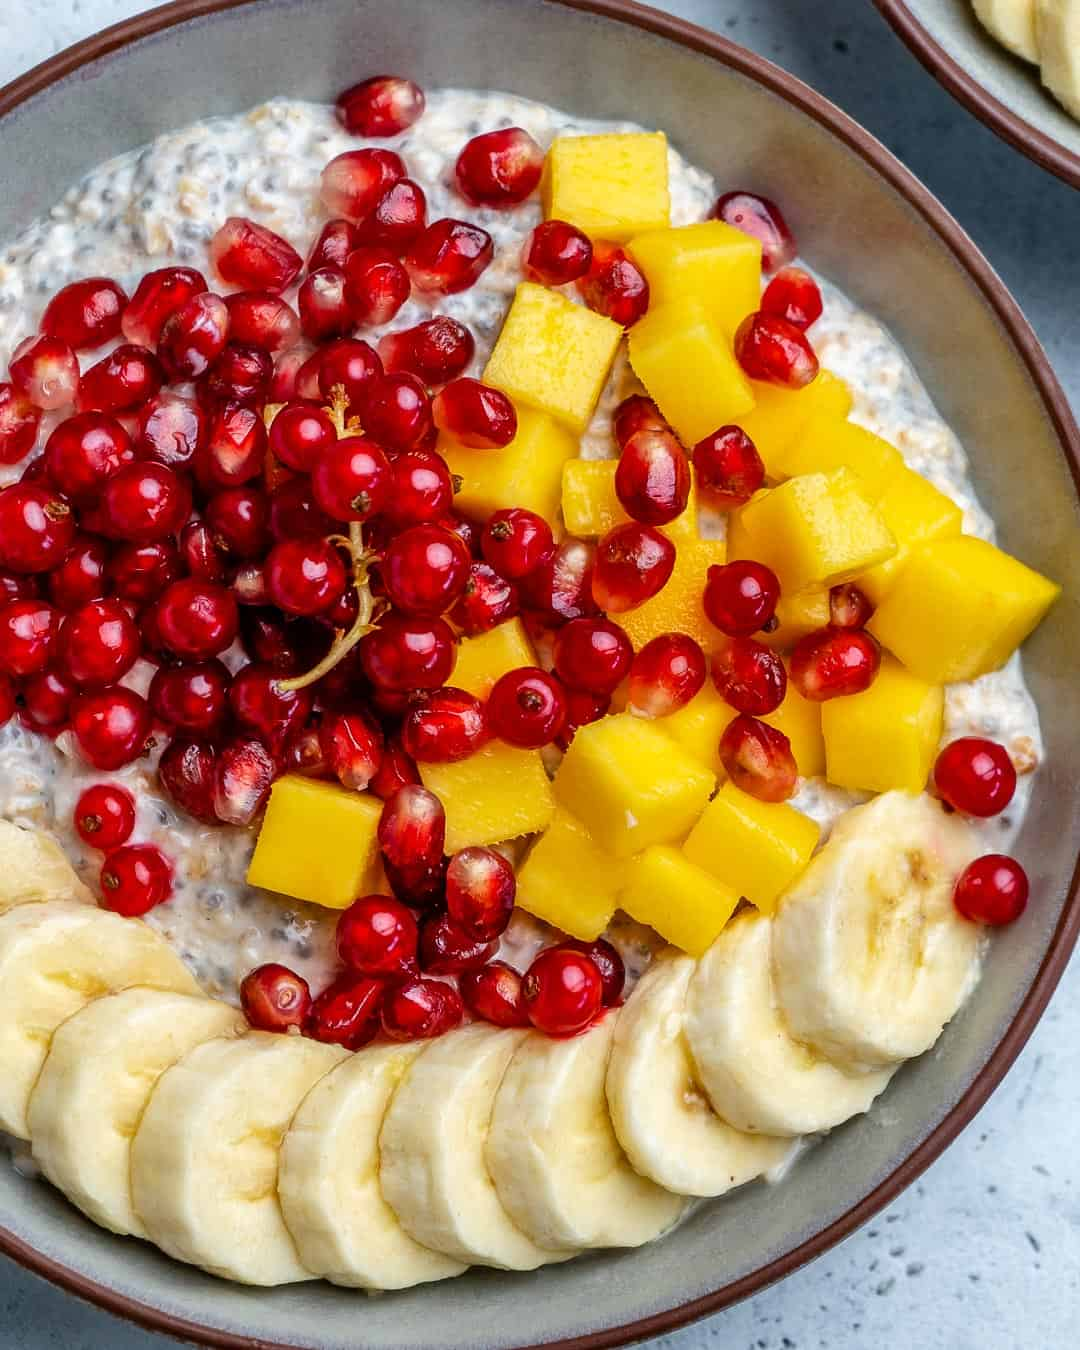 oatmeal with fruit garnishes in bowl